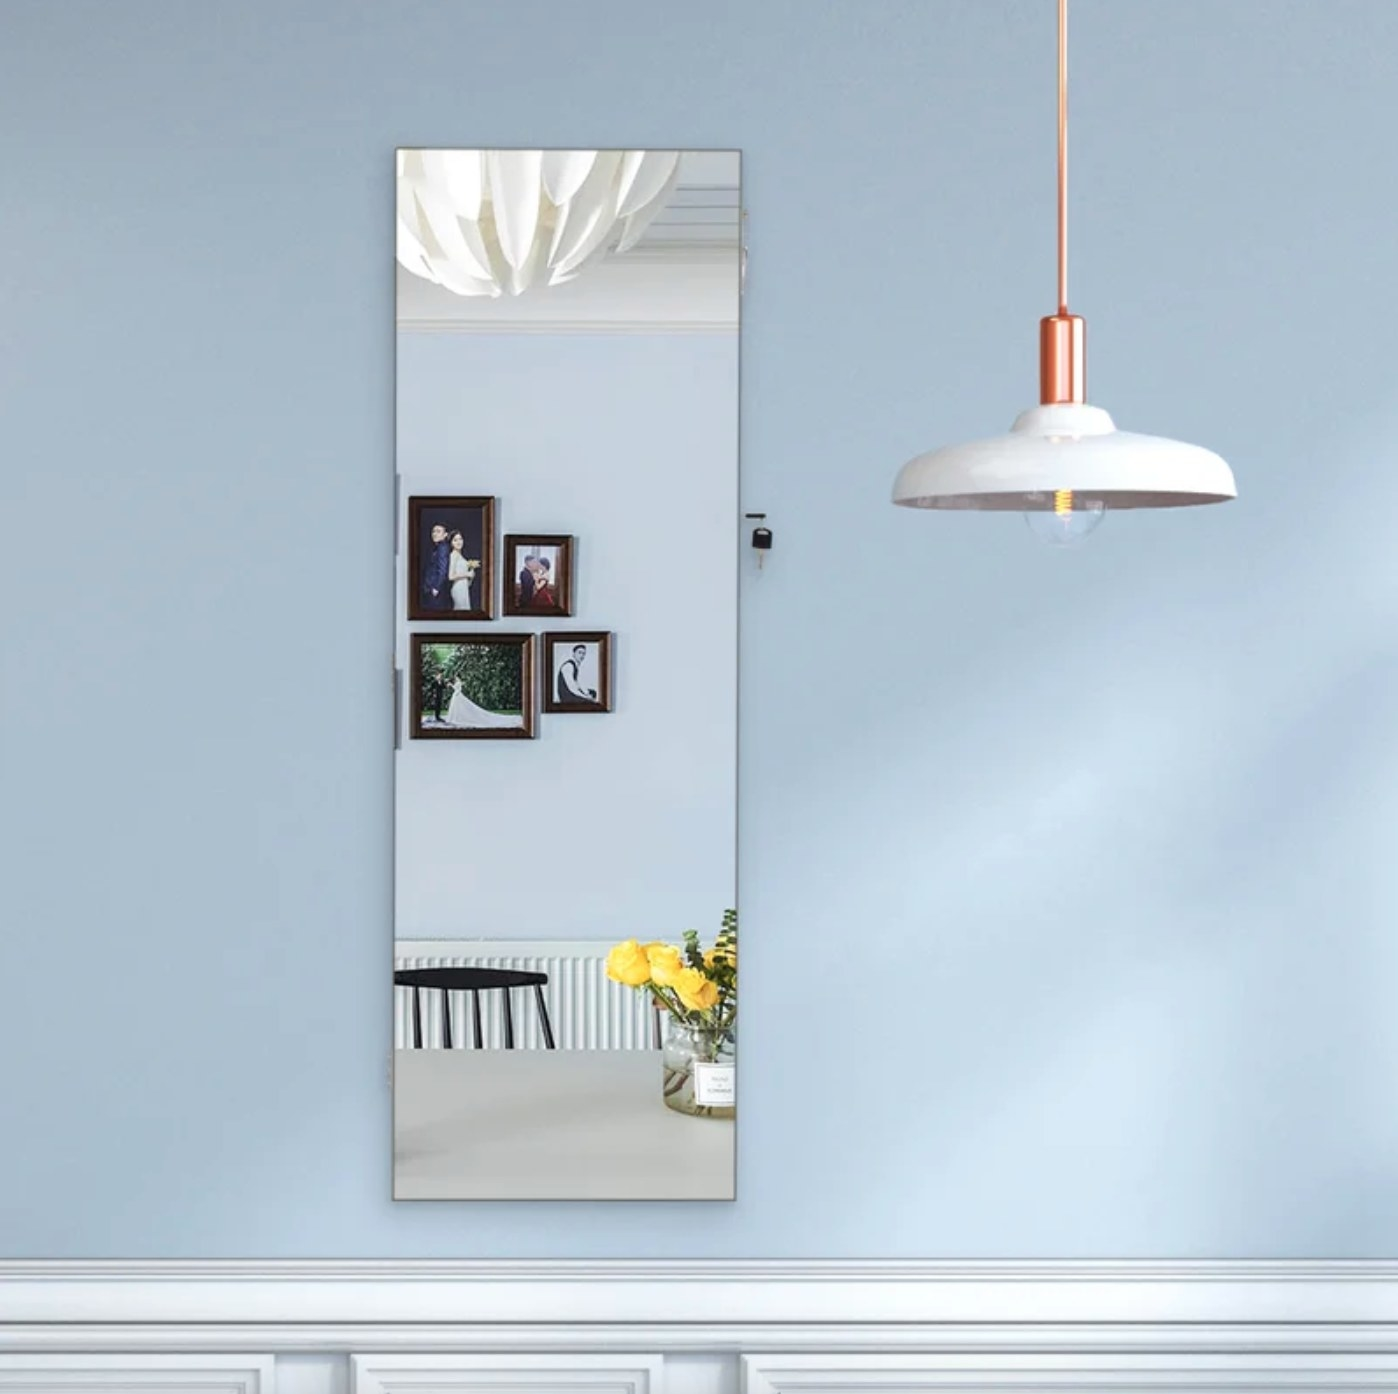 The mounted jewelry armoire that looks like a frameless mirror